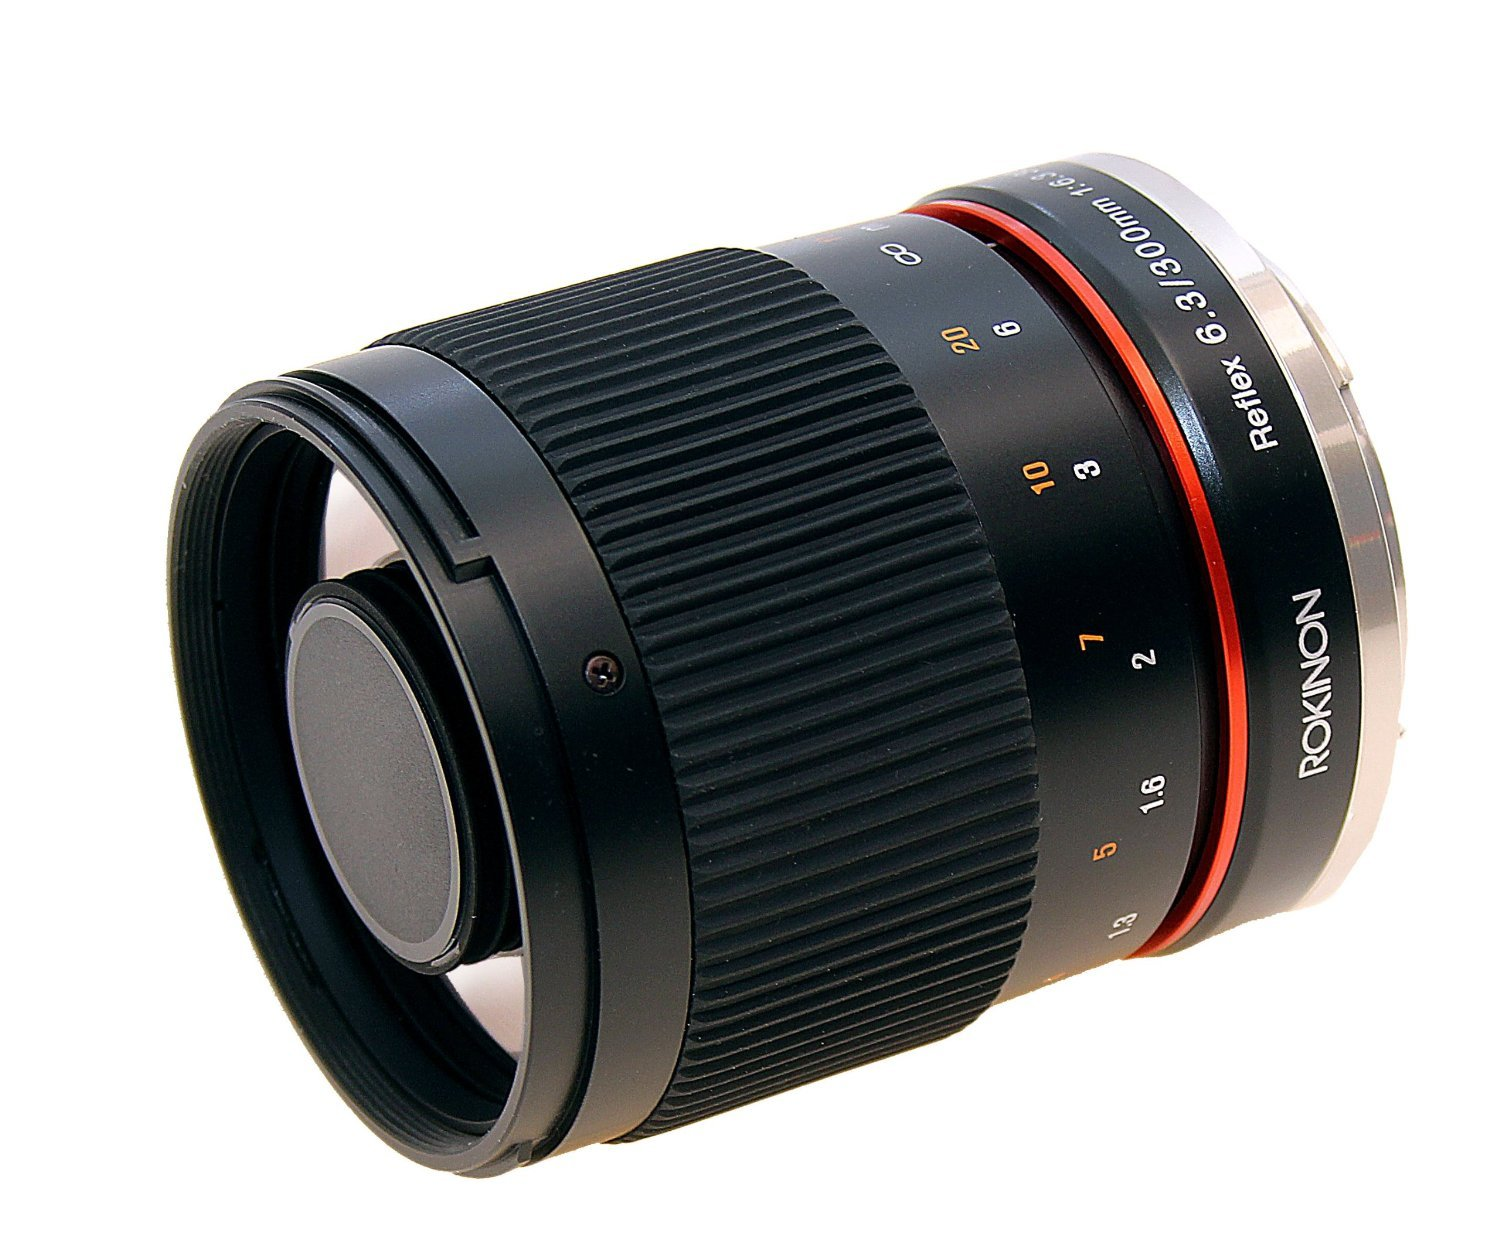 Rokinon 300M-C 300mm F6.3 Mirror Lens for Canon EF Cameras [並行輸入品]   B019SZEDD2